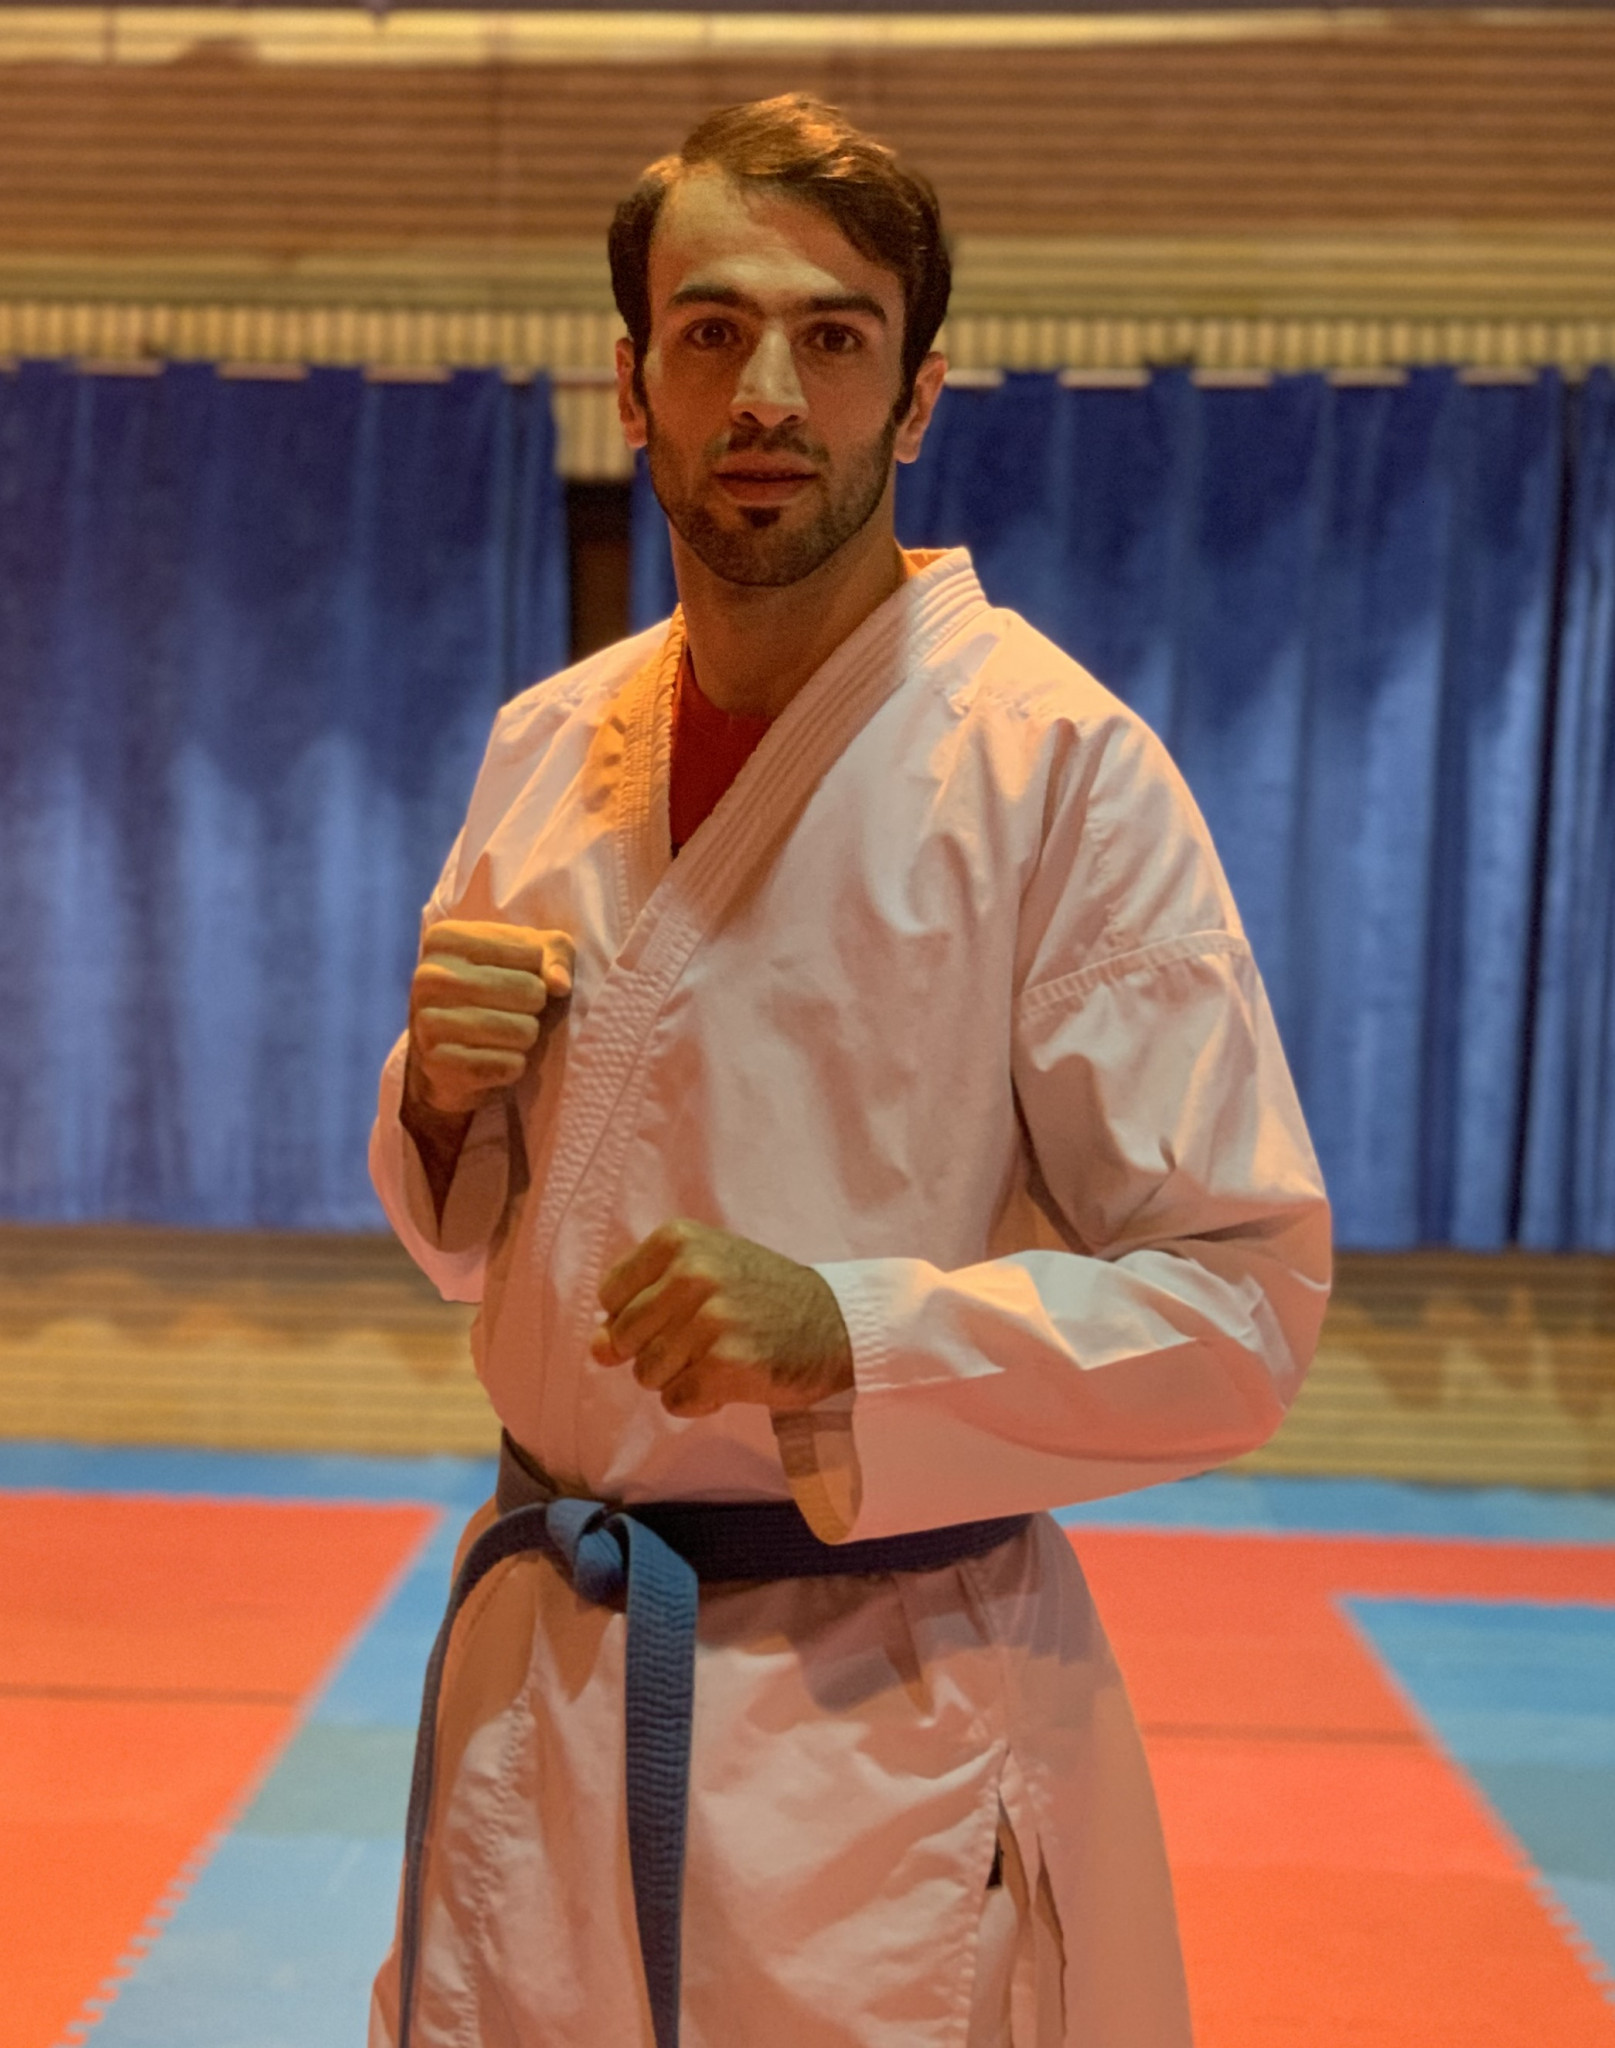 Iranian karateka Askari targeting gold at rearranged Tokyo 2020